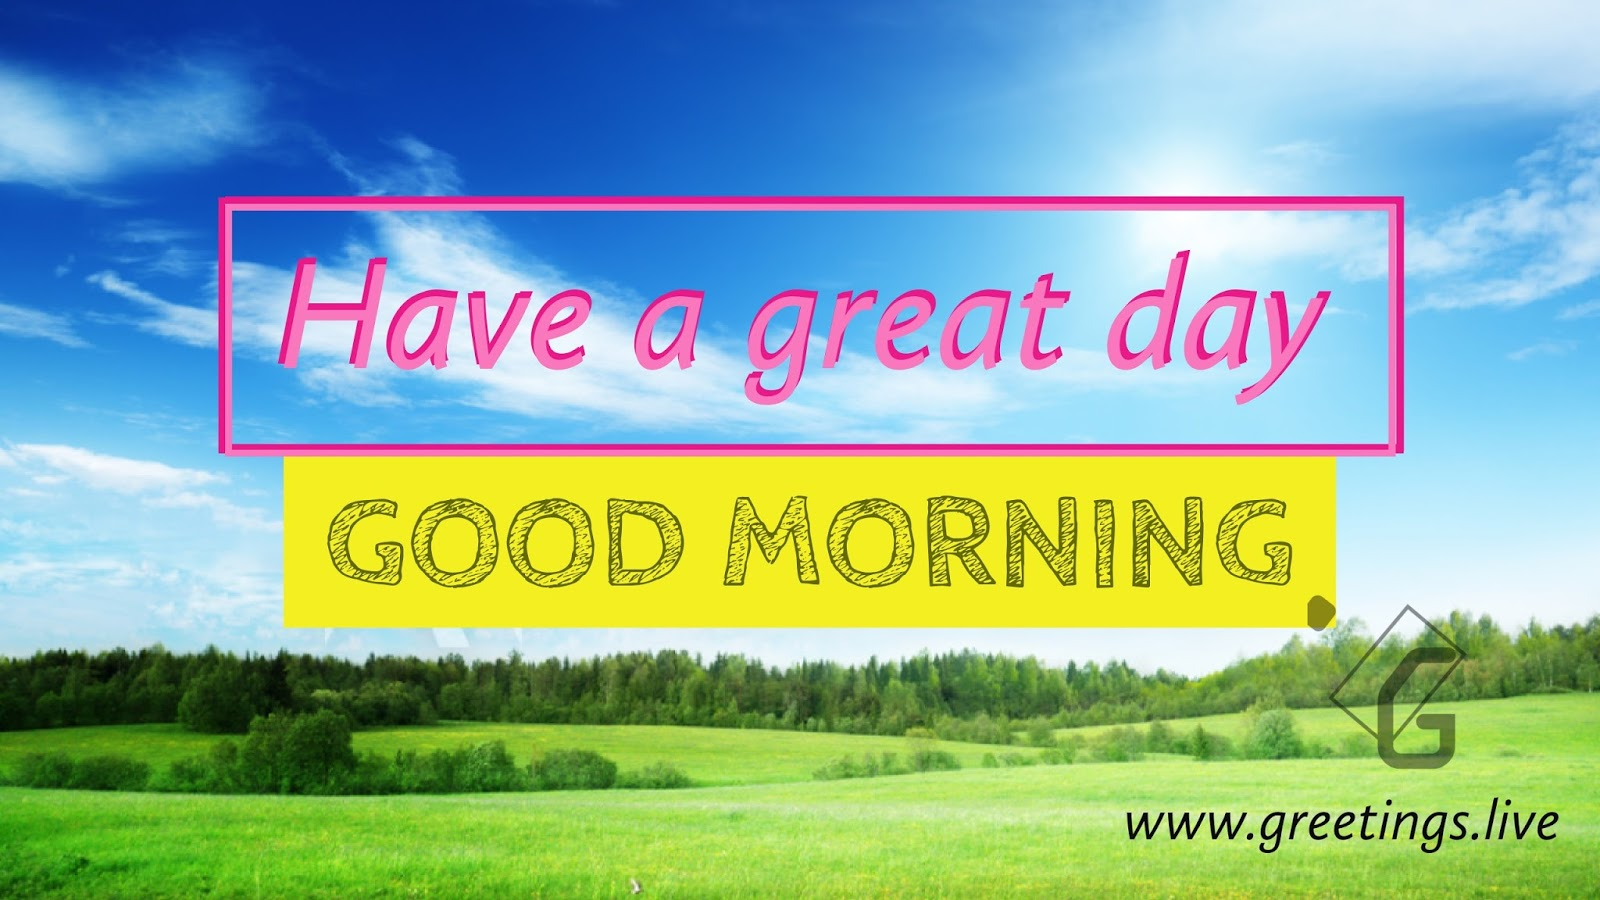 Greetingsve hd images love smile birthday wishes free download 5 5 enticing good morning greetings for daily happy life kristyandbryce Choice Image